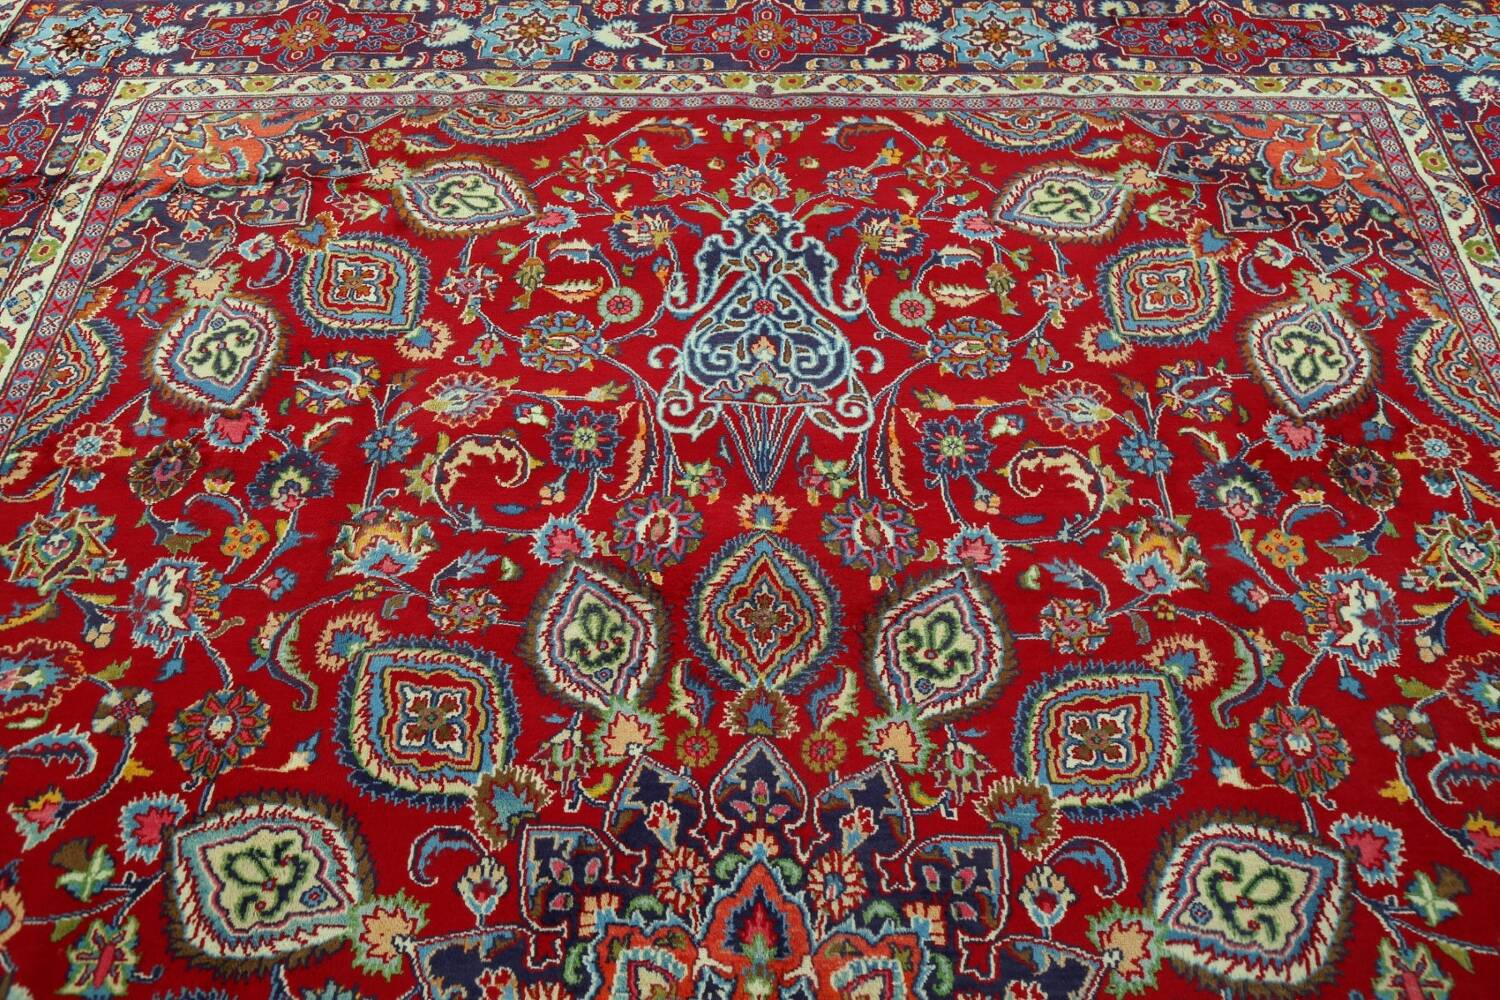 Floral Red Mashad Persian Area Rug 10x13 image 13